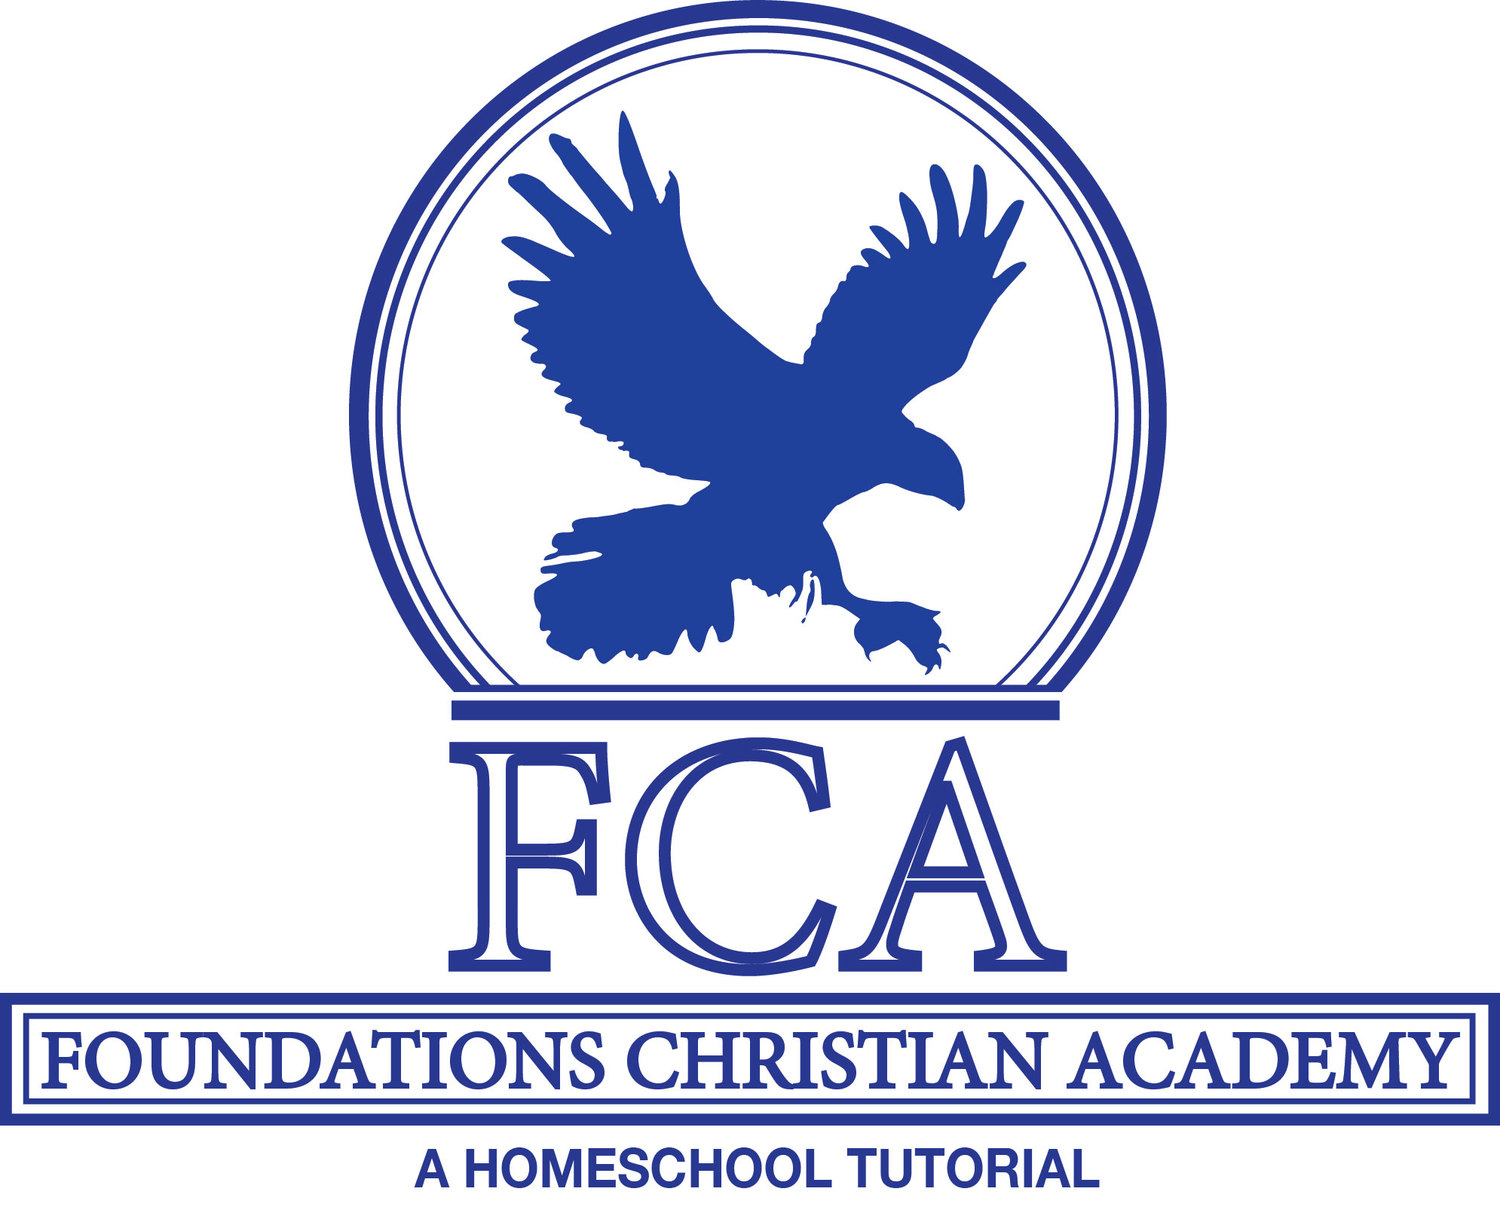 Foundations Christian Academy